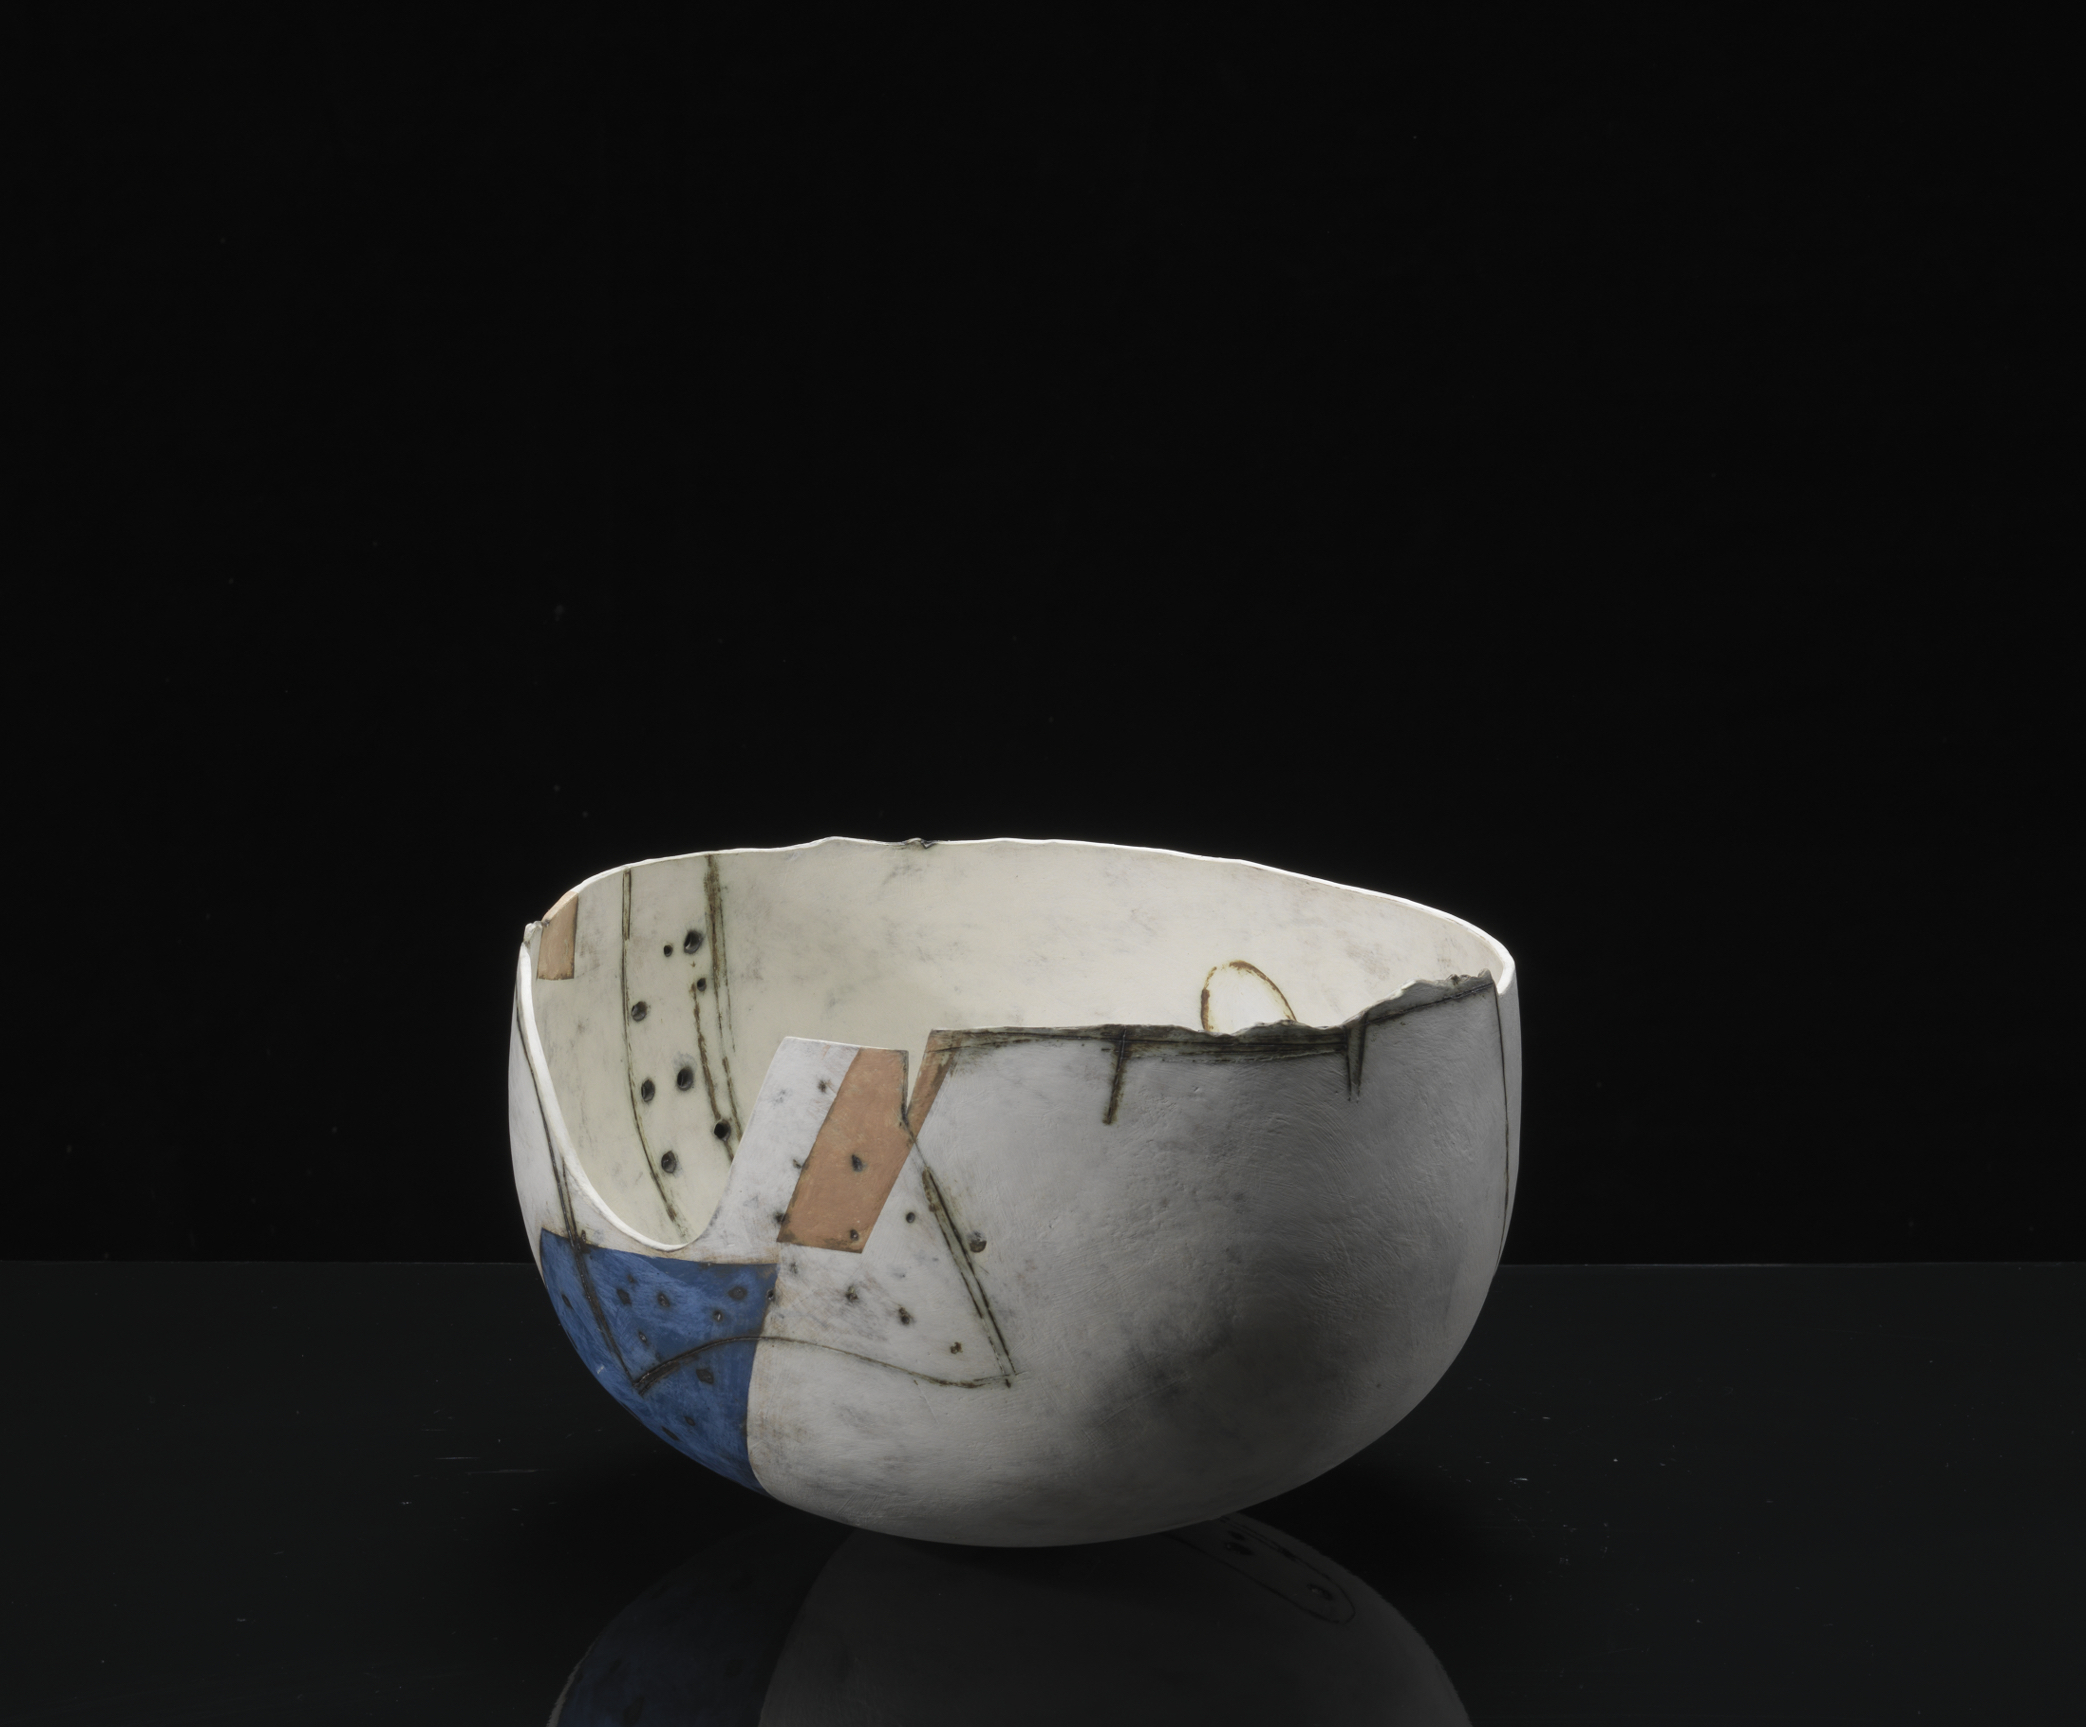 image: Gordon Baldwin, Painting in the Form of a Bowl, Earthenware (19 x 31cm), 1984.  Courtesy of Erskine, Hall & Coe Ltd. Photography by Michael Harvey